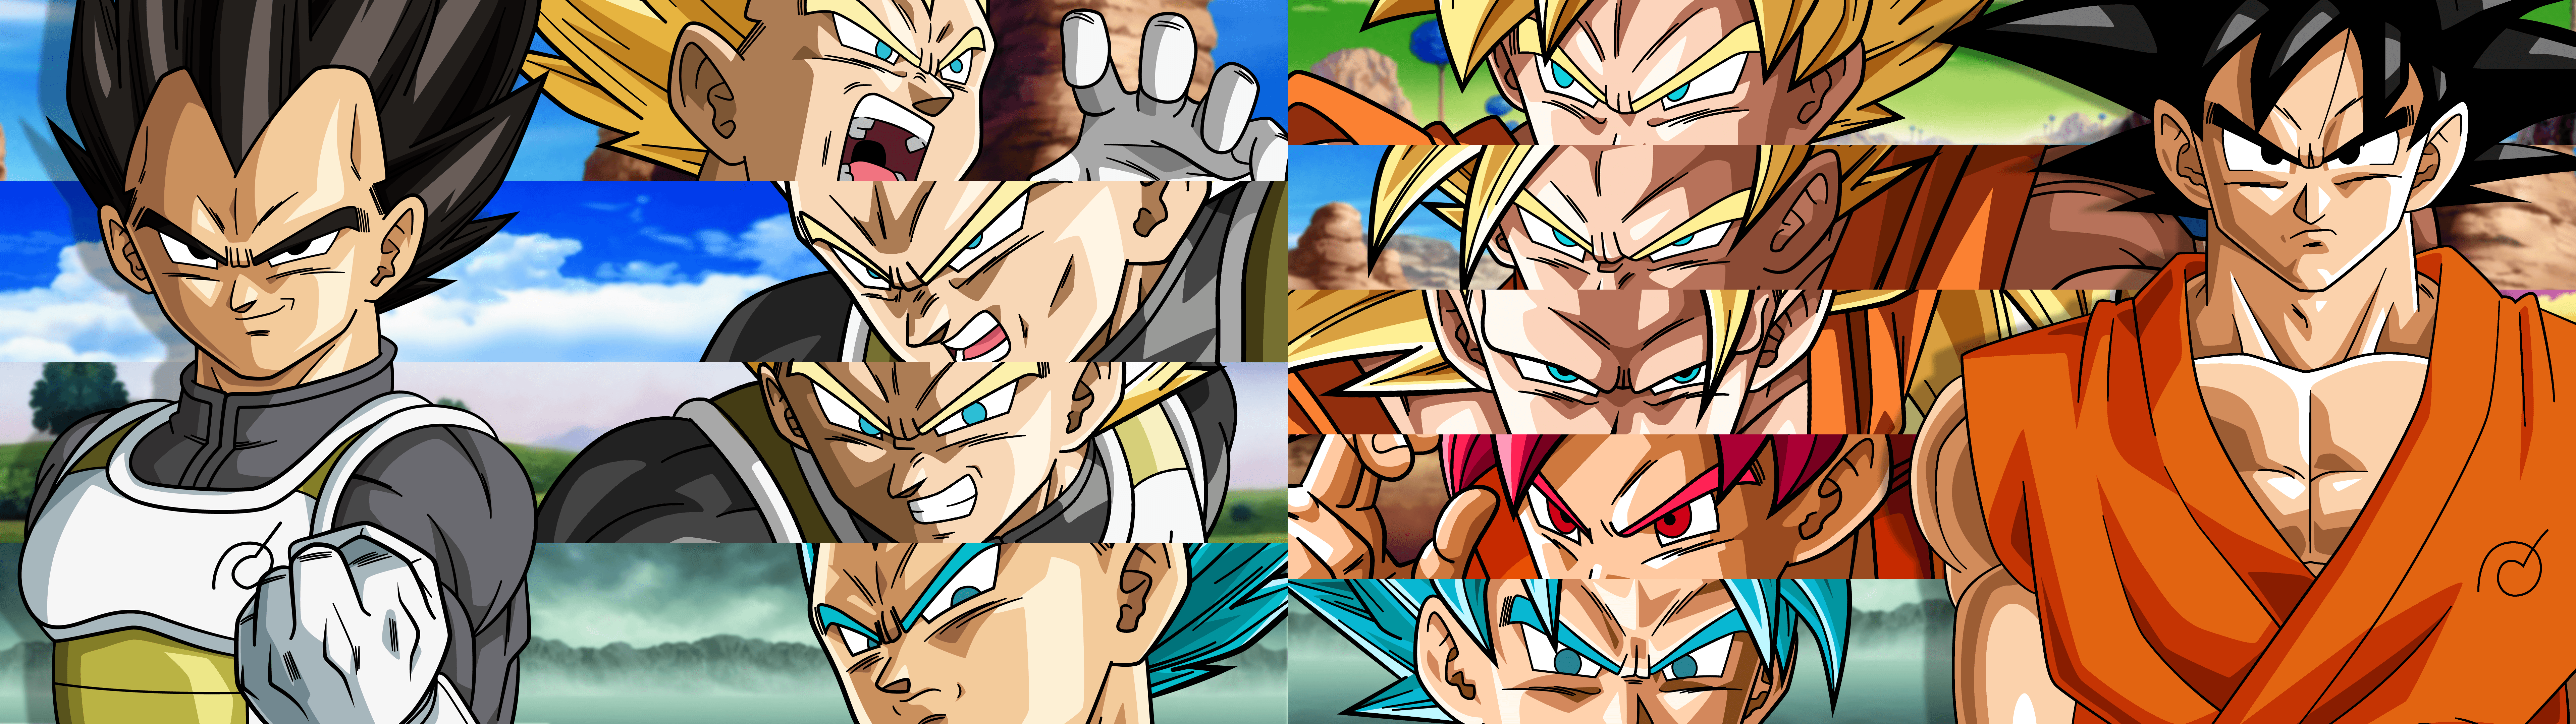 Vegeta and Goku All SSJ Forms (4K Dual Wallpaper) by ...